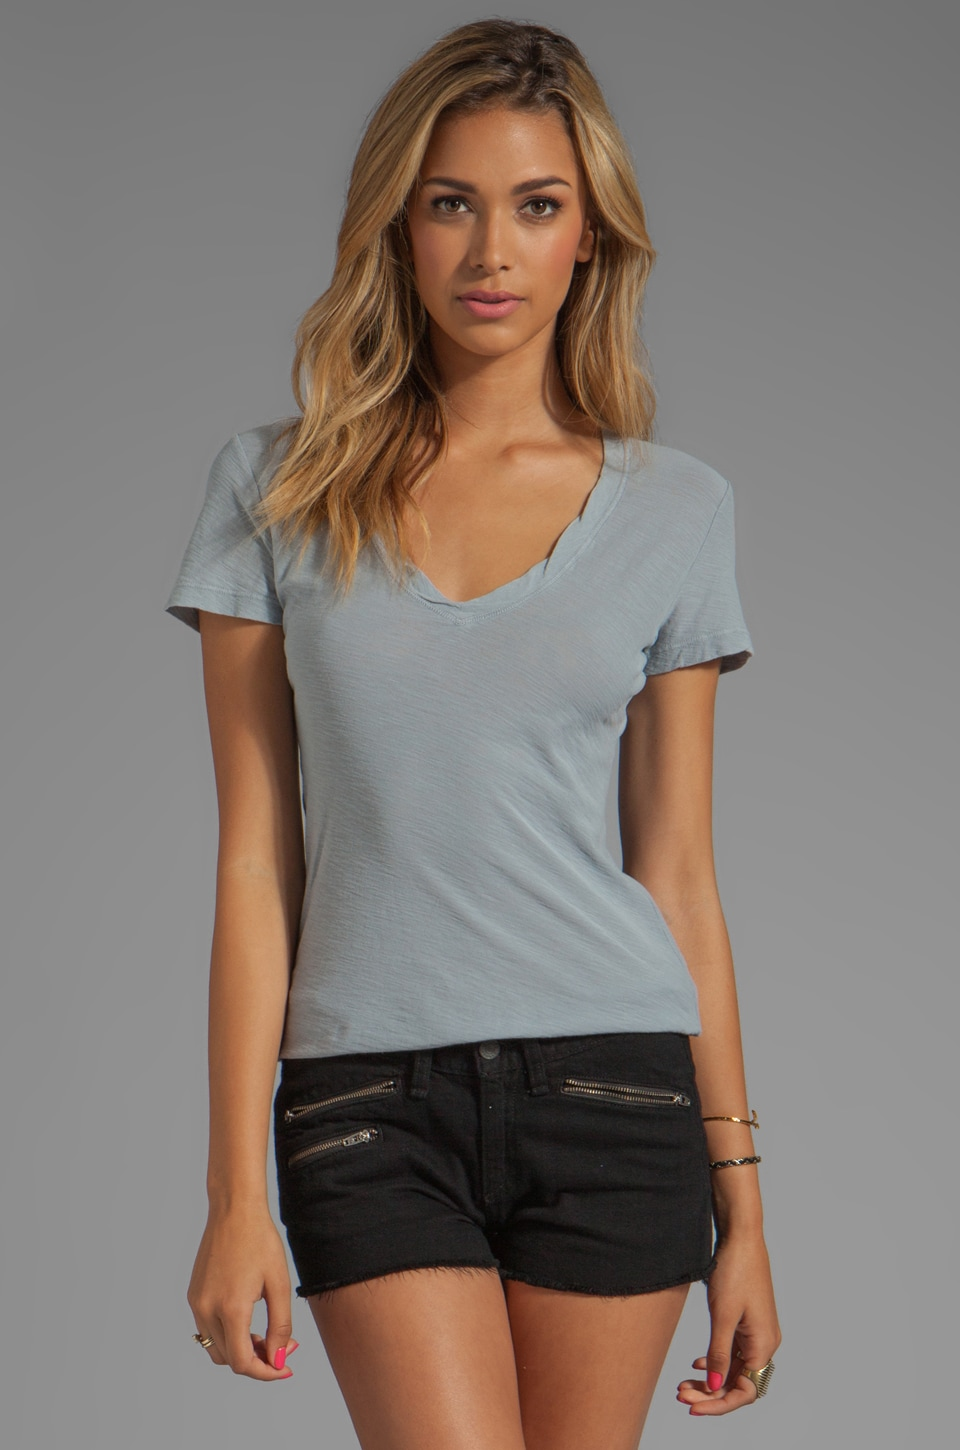 James Perse Casual Tee in Ore